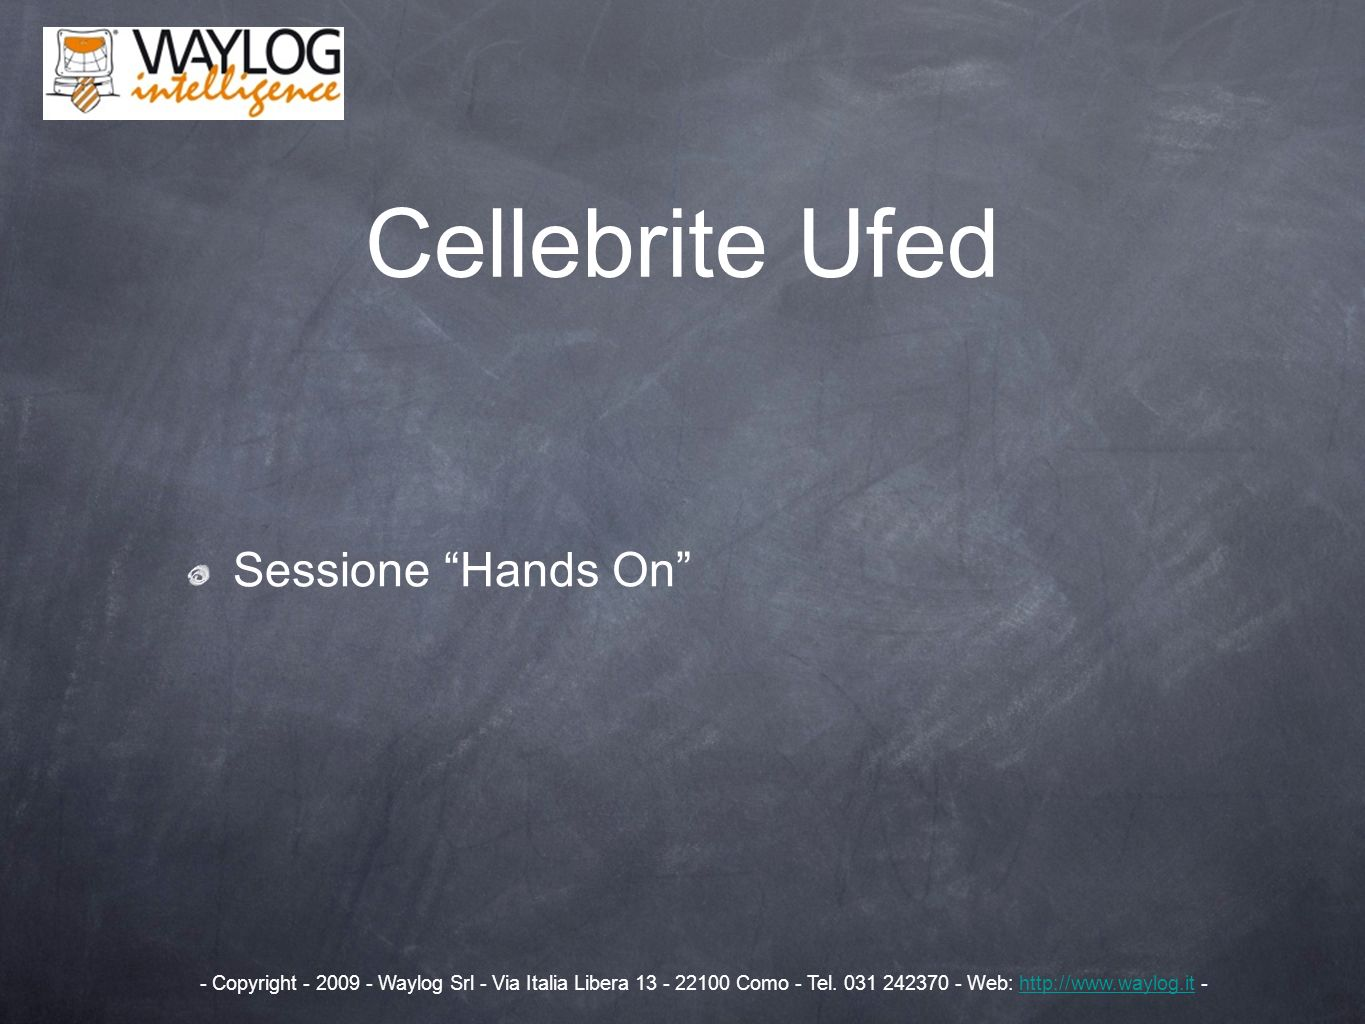 Cellebrite Ufed Sessione Hands On